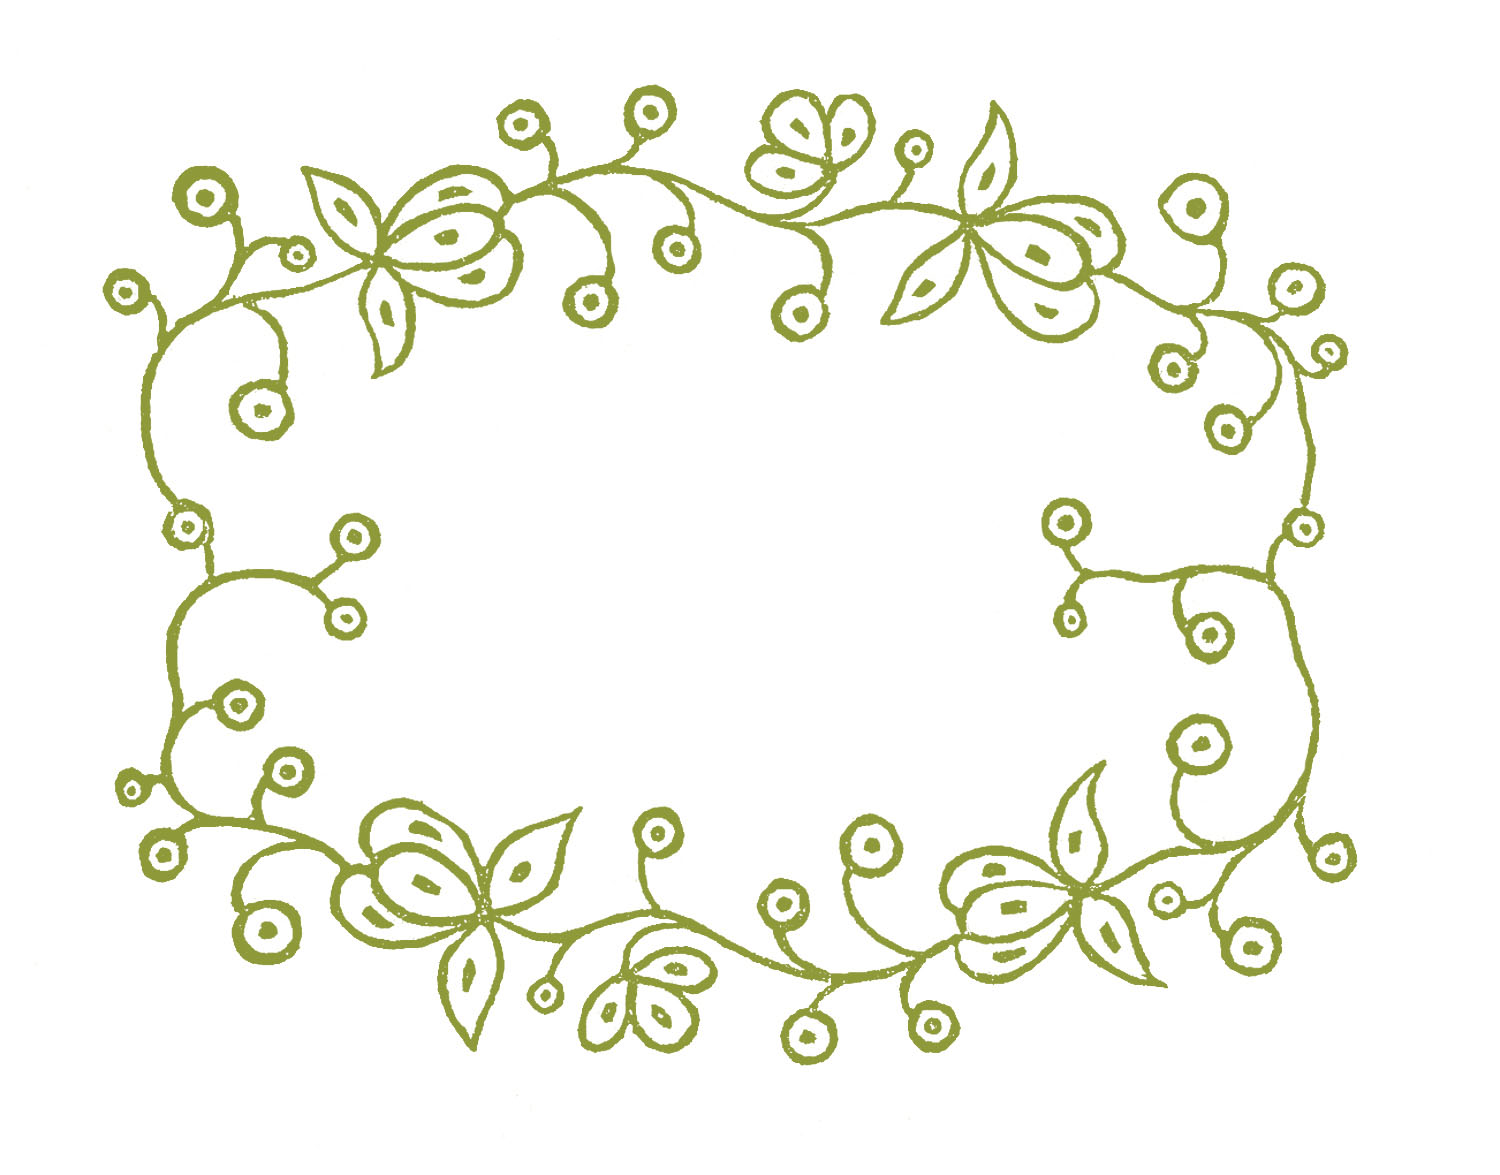 Frames Floral Embroidery Patterns